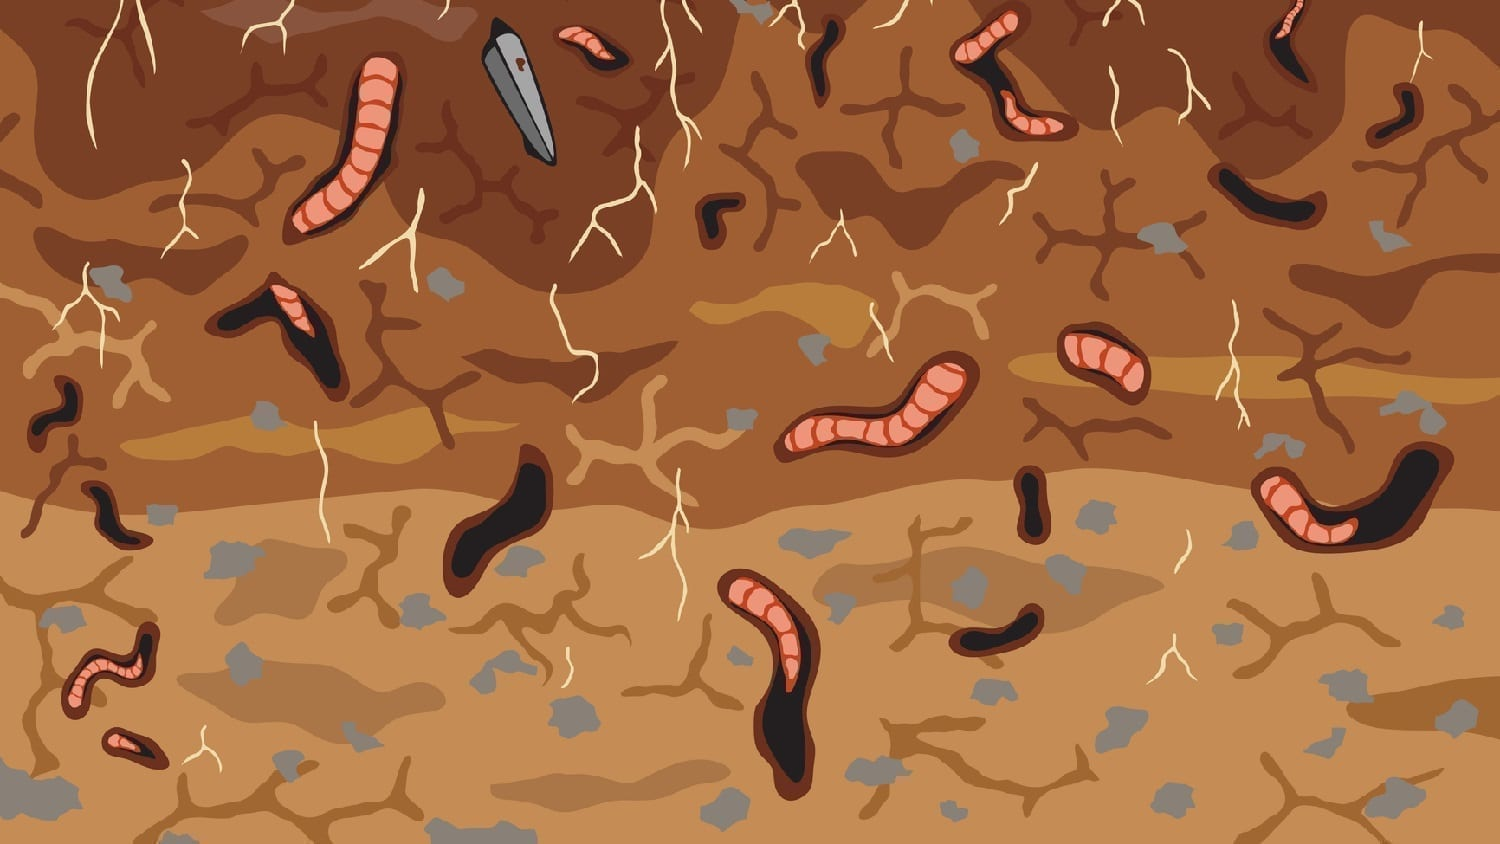 Dirt with roots and worm burrows: Illustration 16312429 © Robert Adrian Hillman | Dreamstime.com